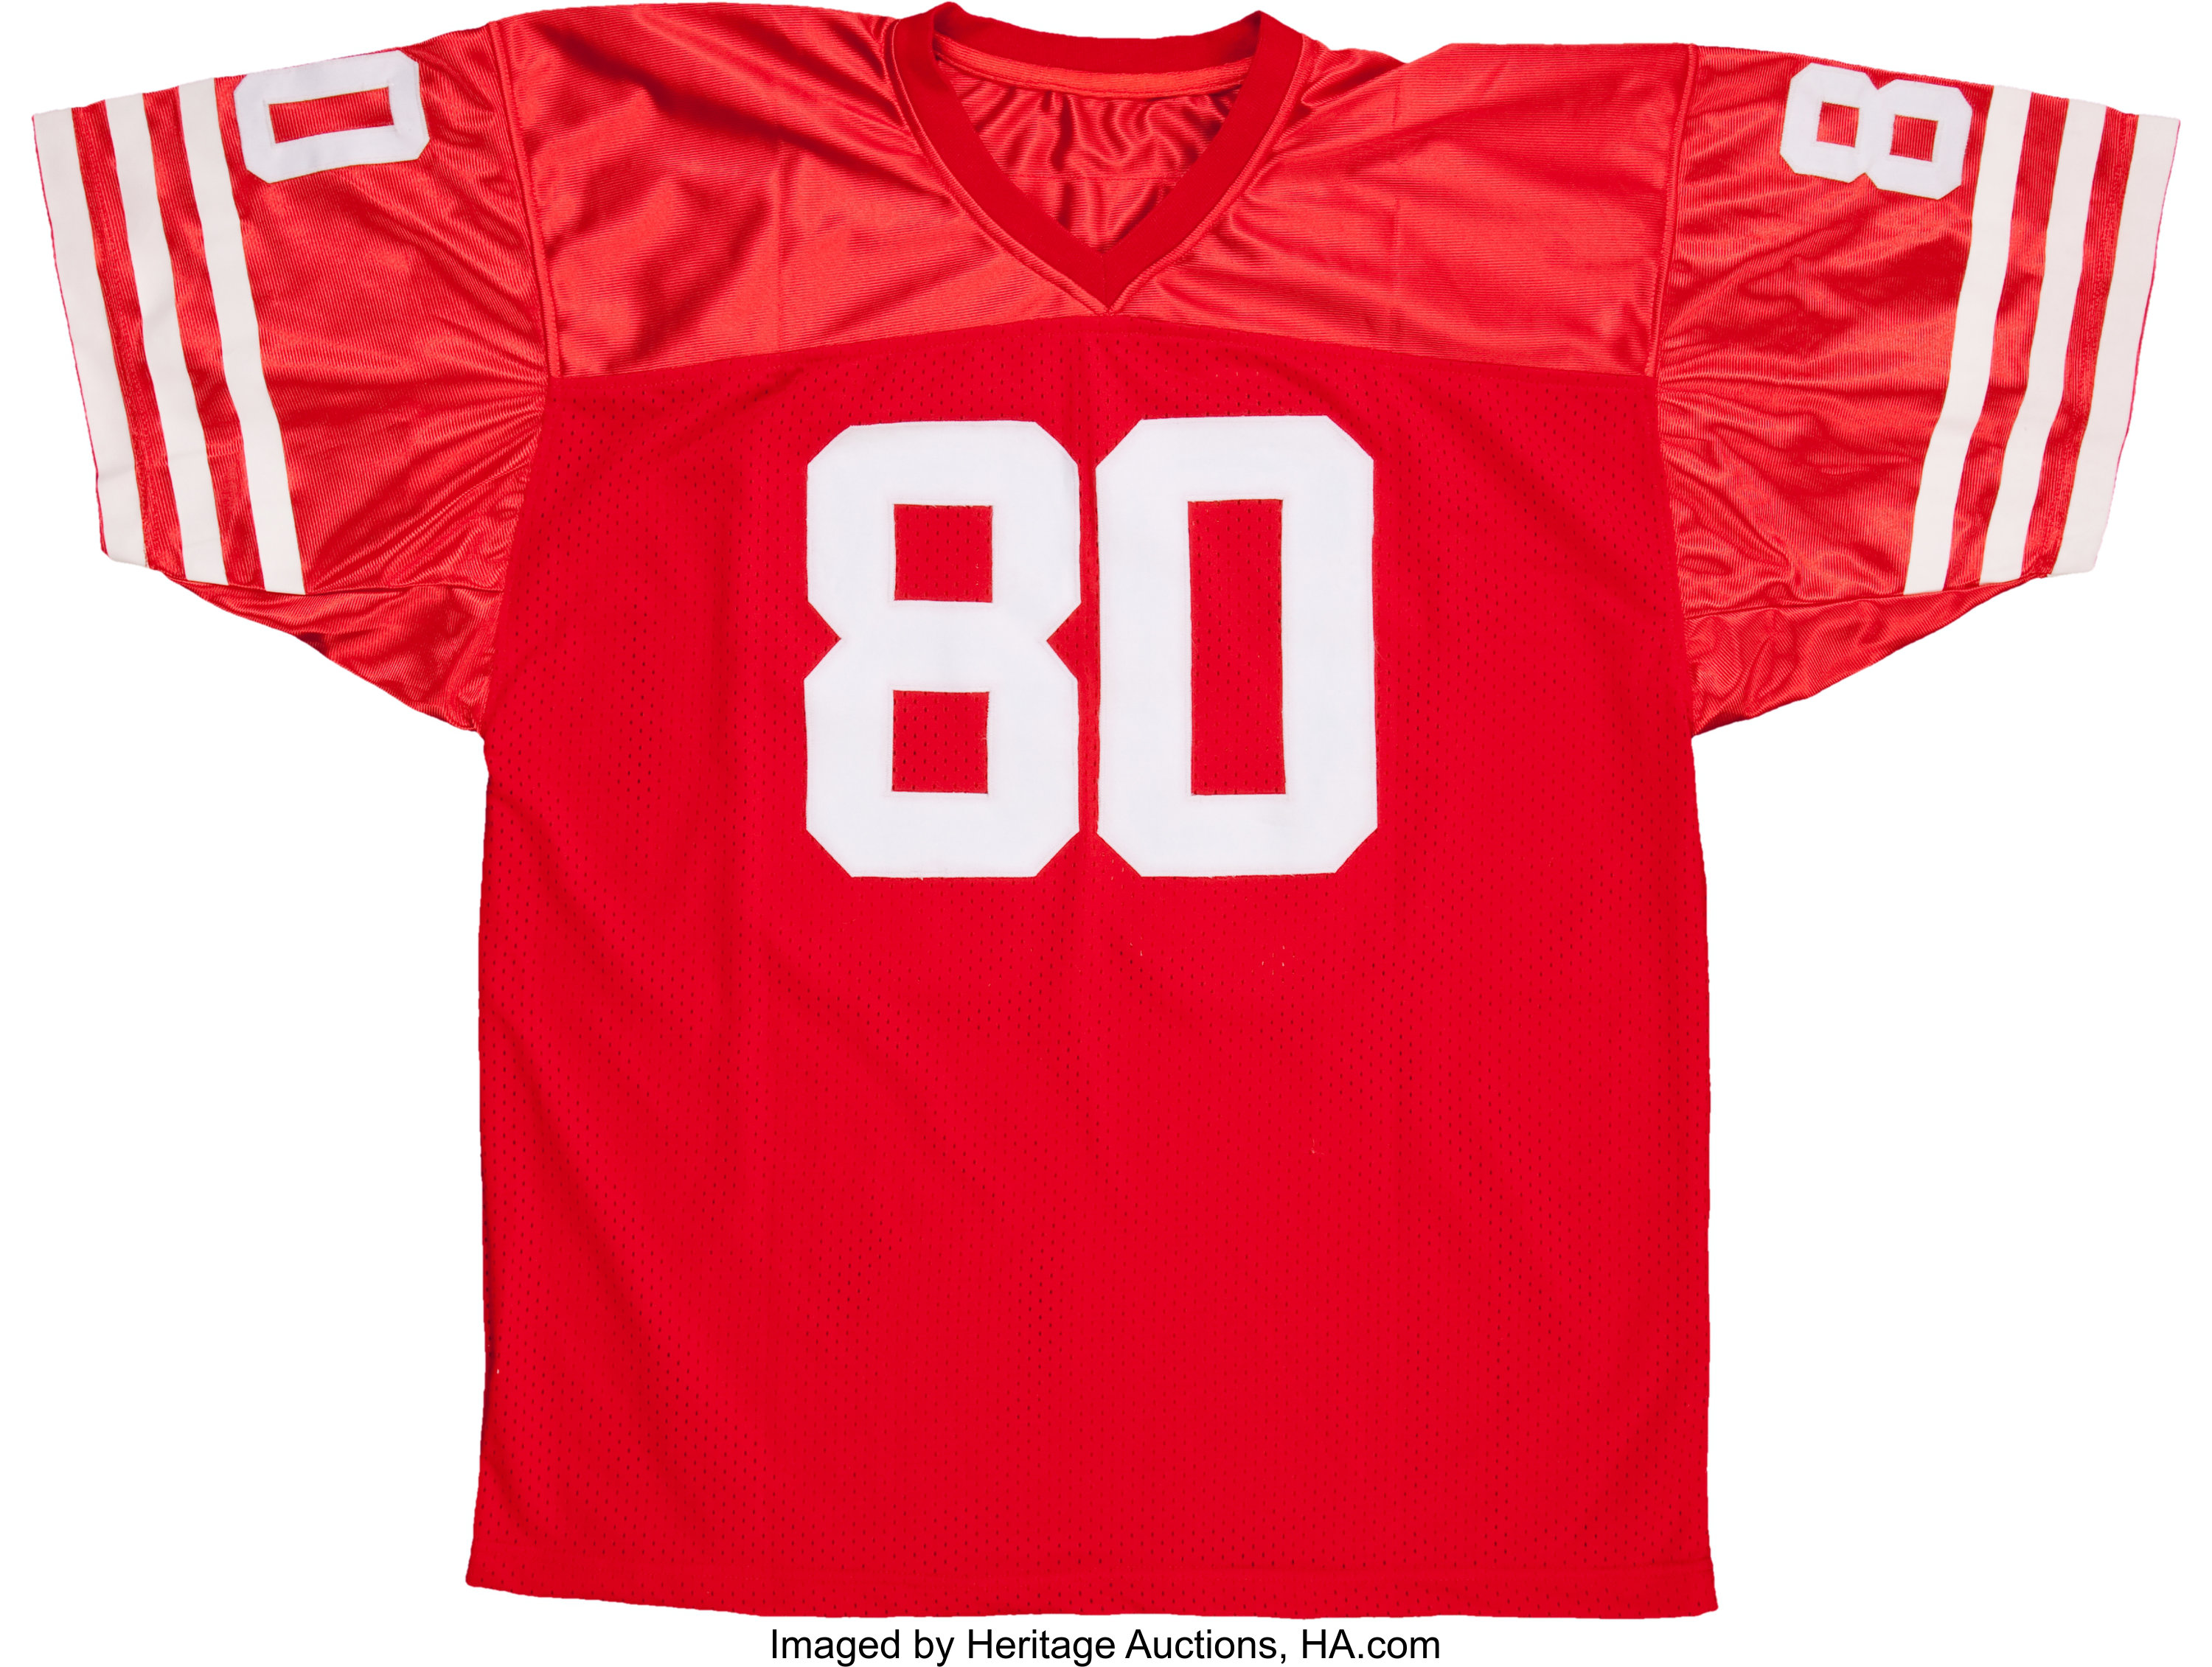 buy online ca5cd a8254 Jerry Rice Signed Jersey.... Football Collectibles Uniforms ...